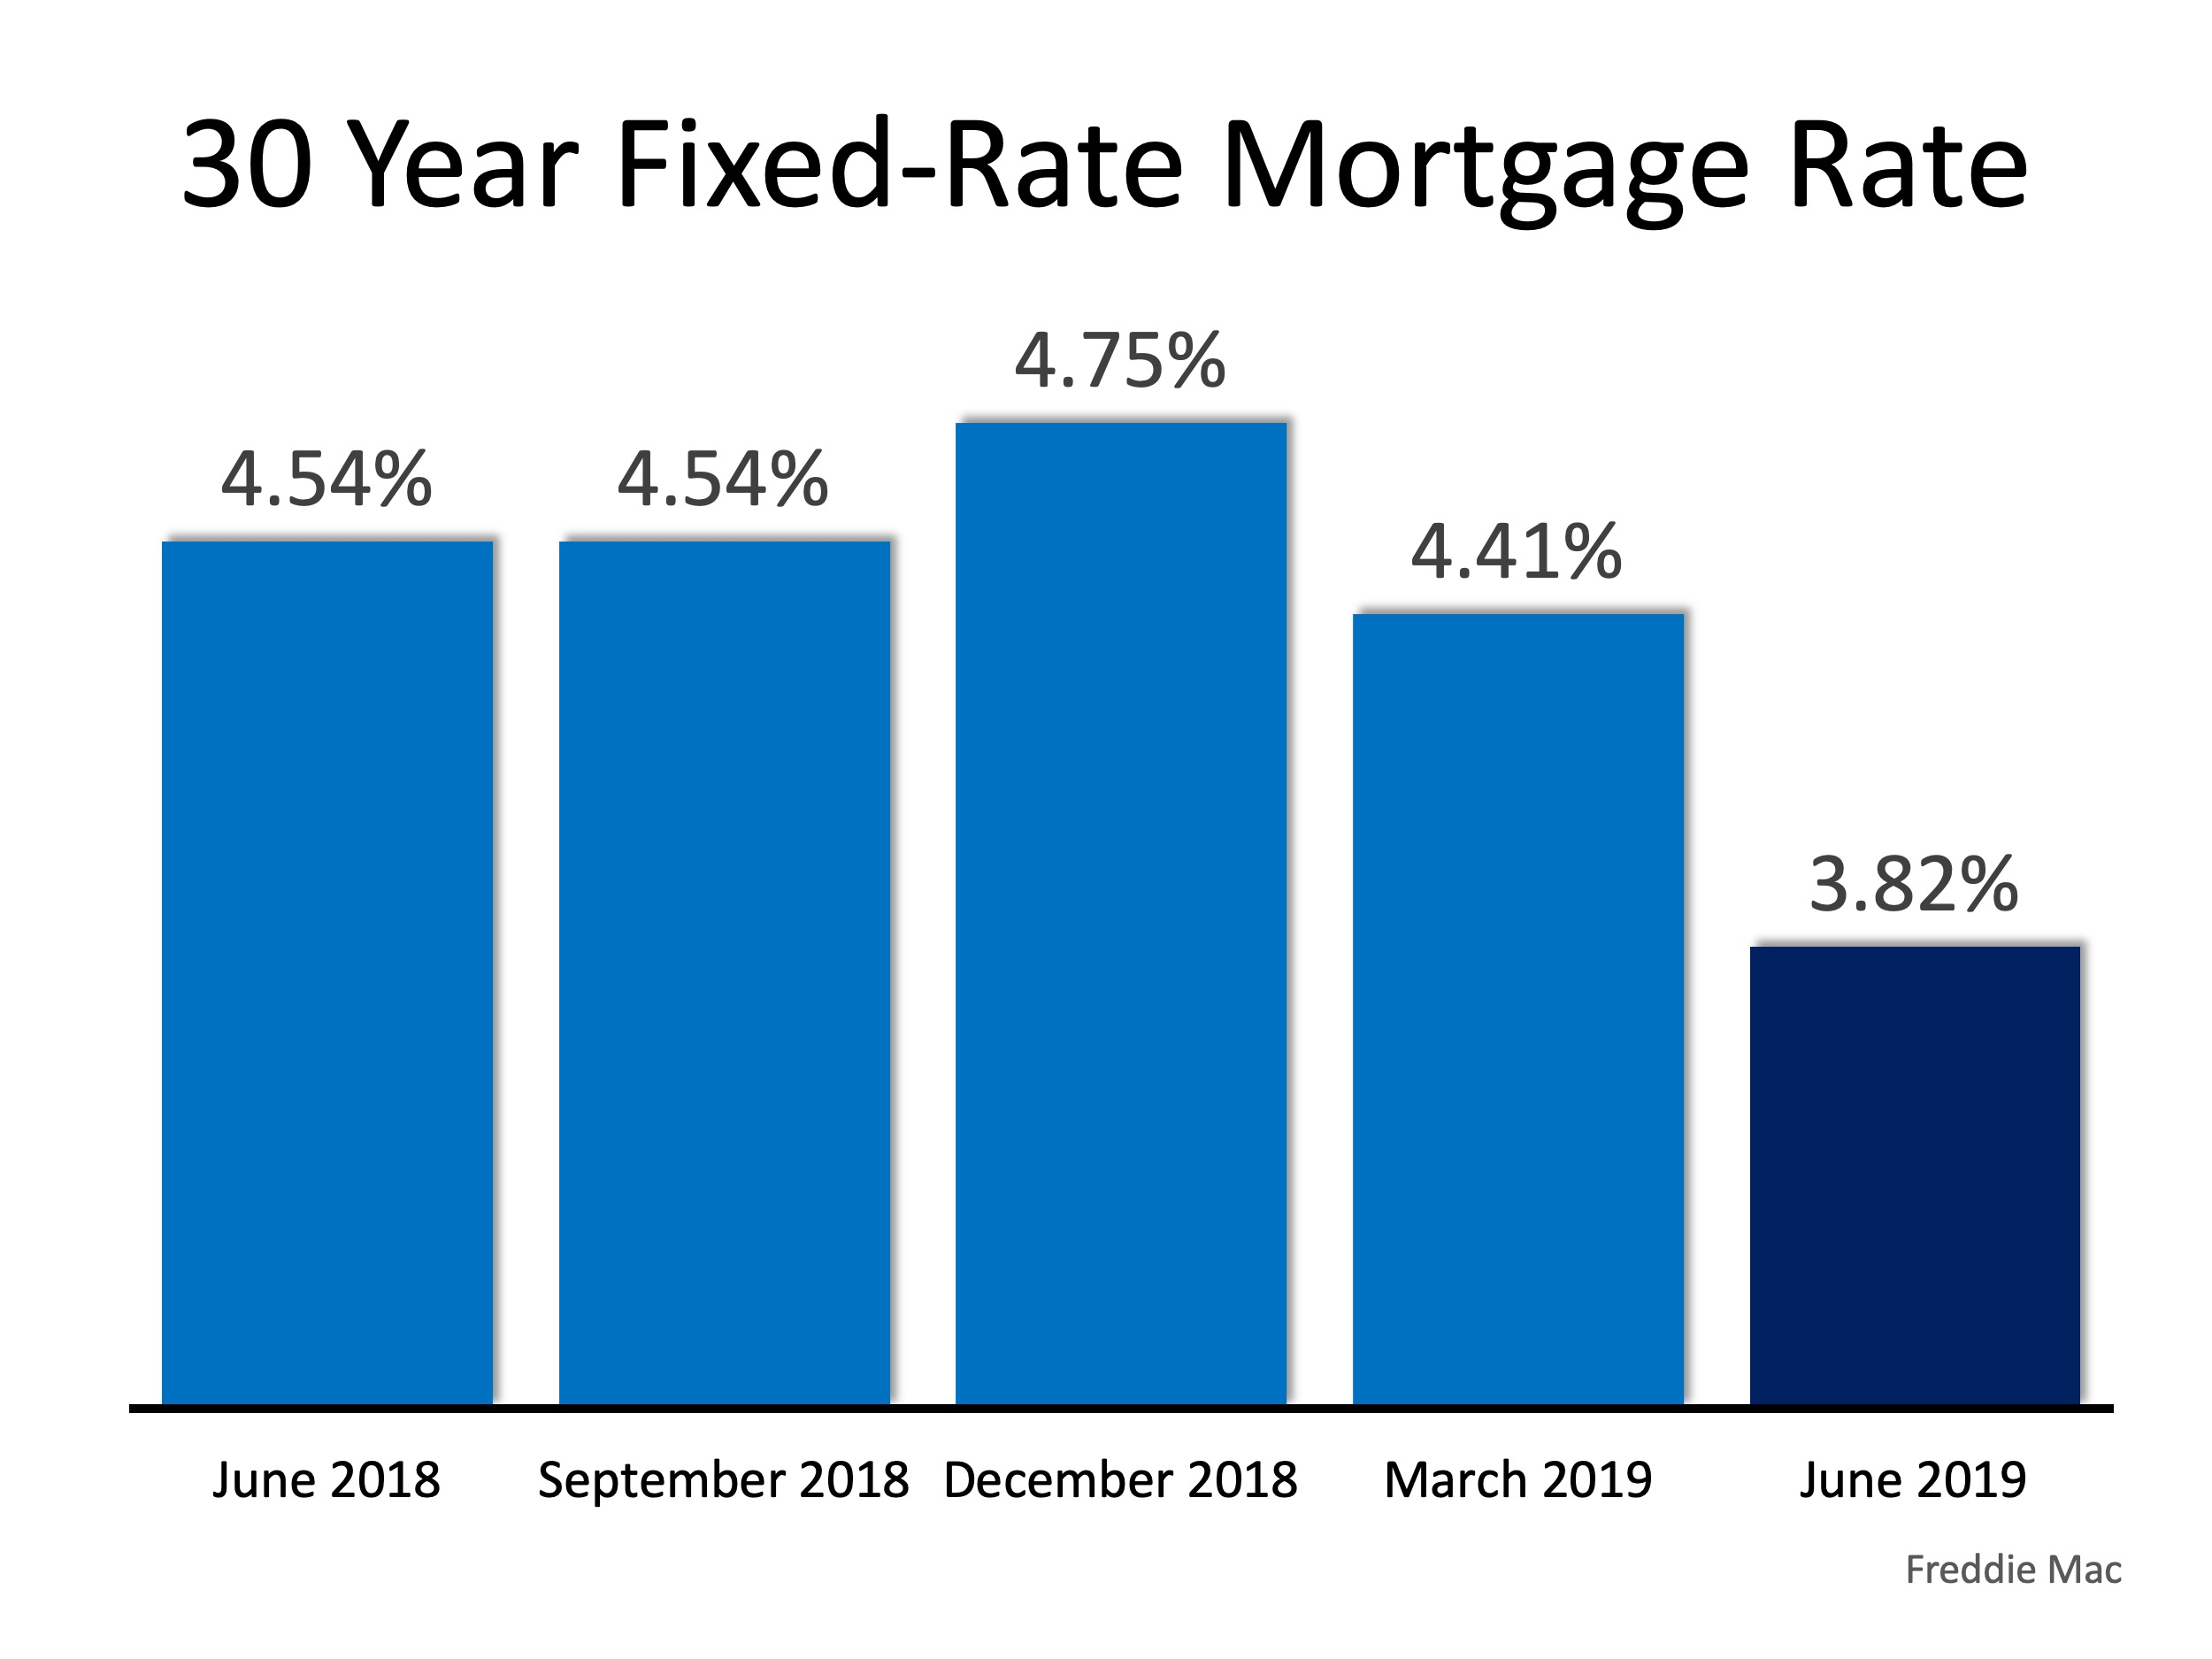 INTEREST RATES Have Been Dropping!